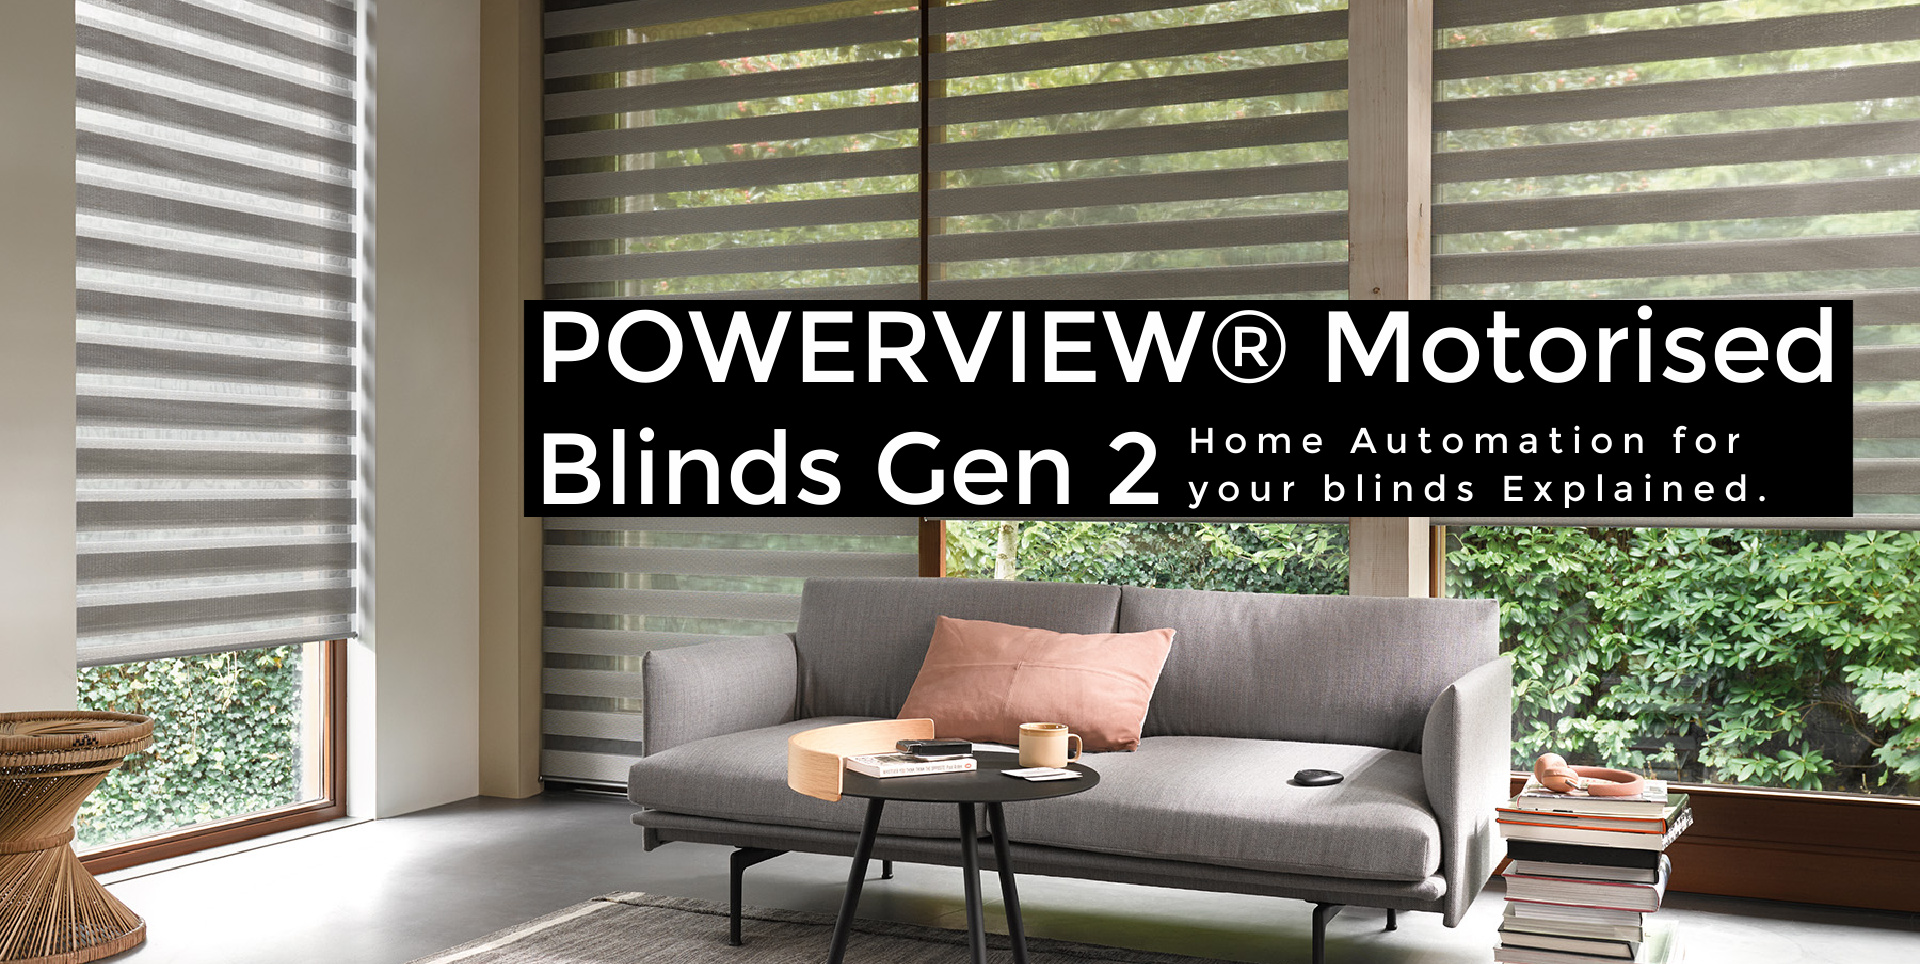 Twist PowerView electric blinds in arge living room windows.